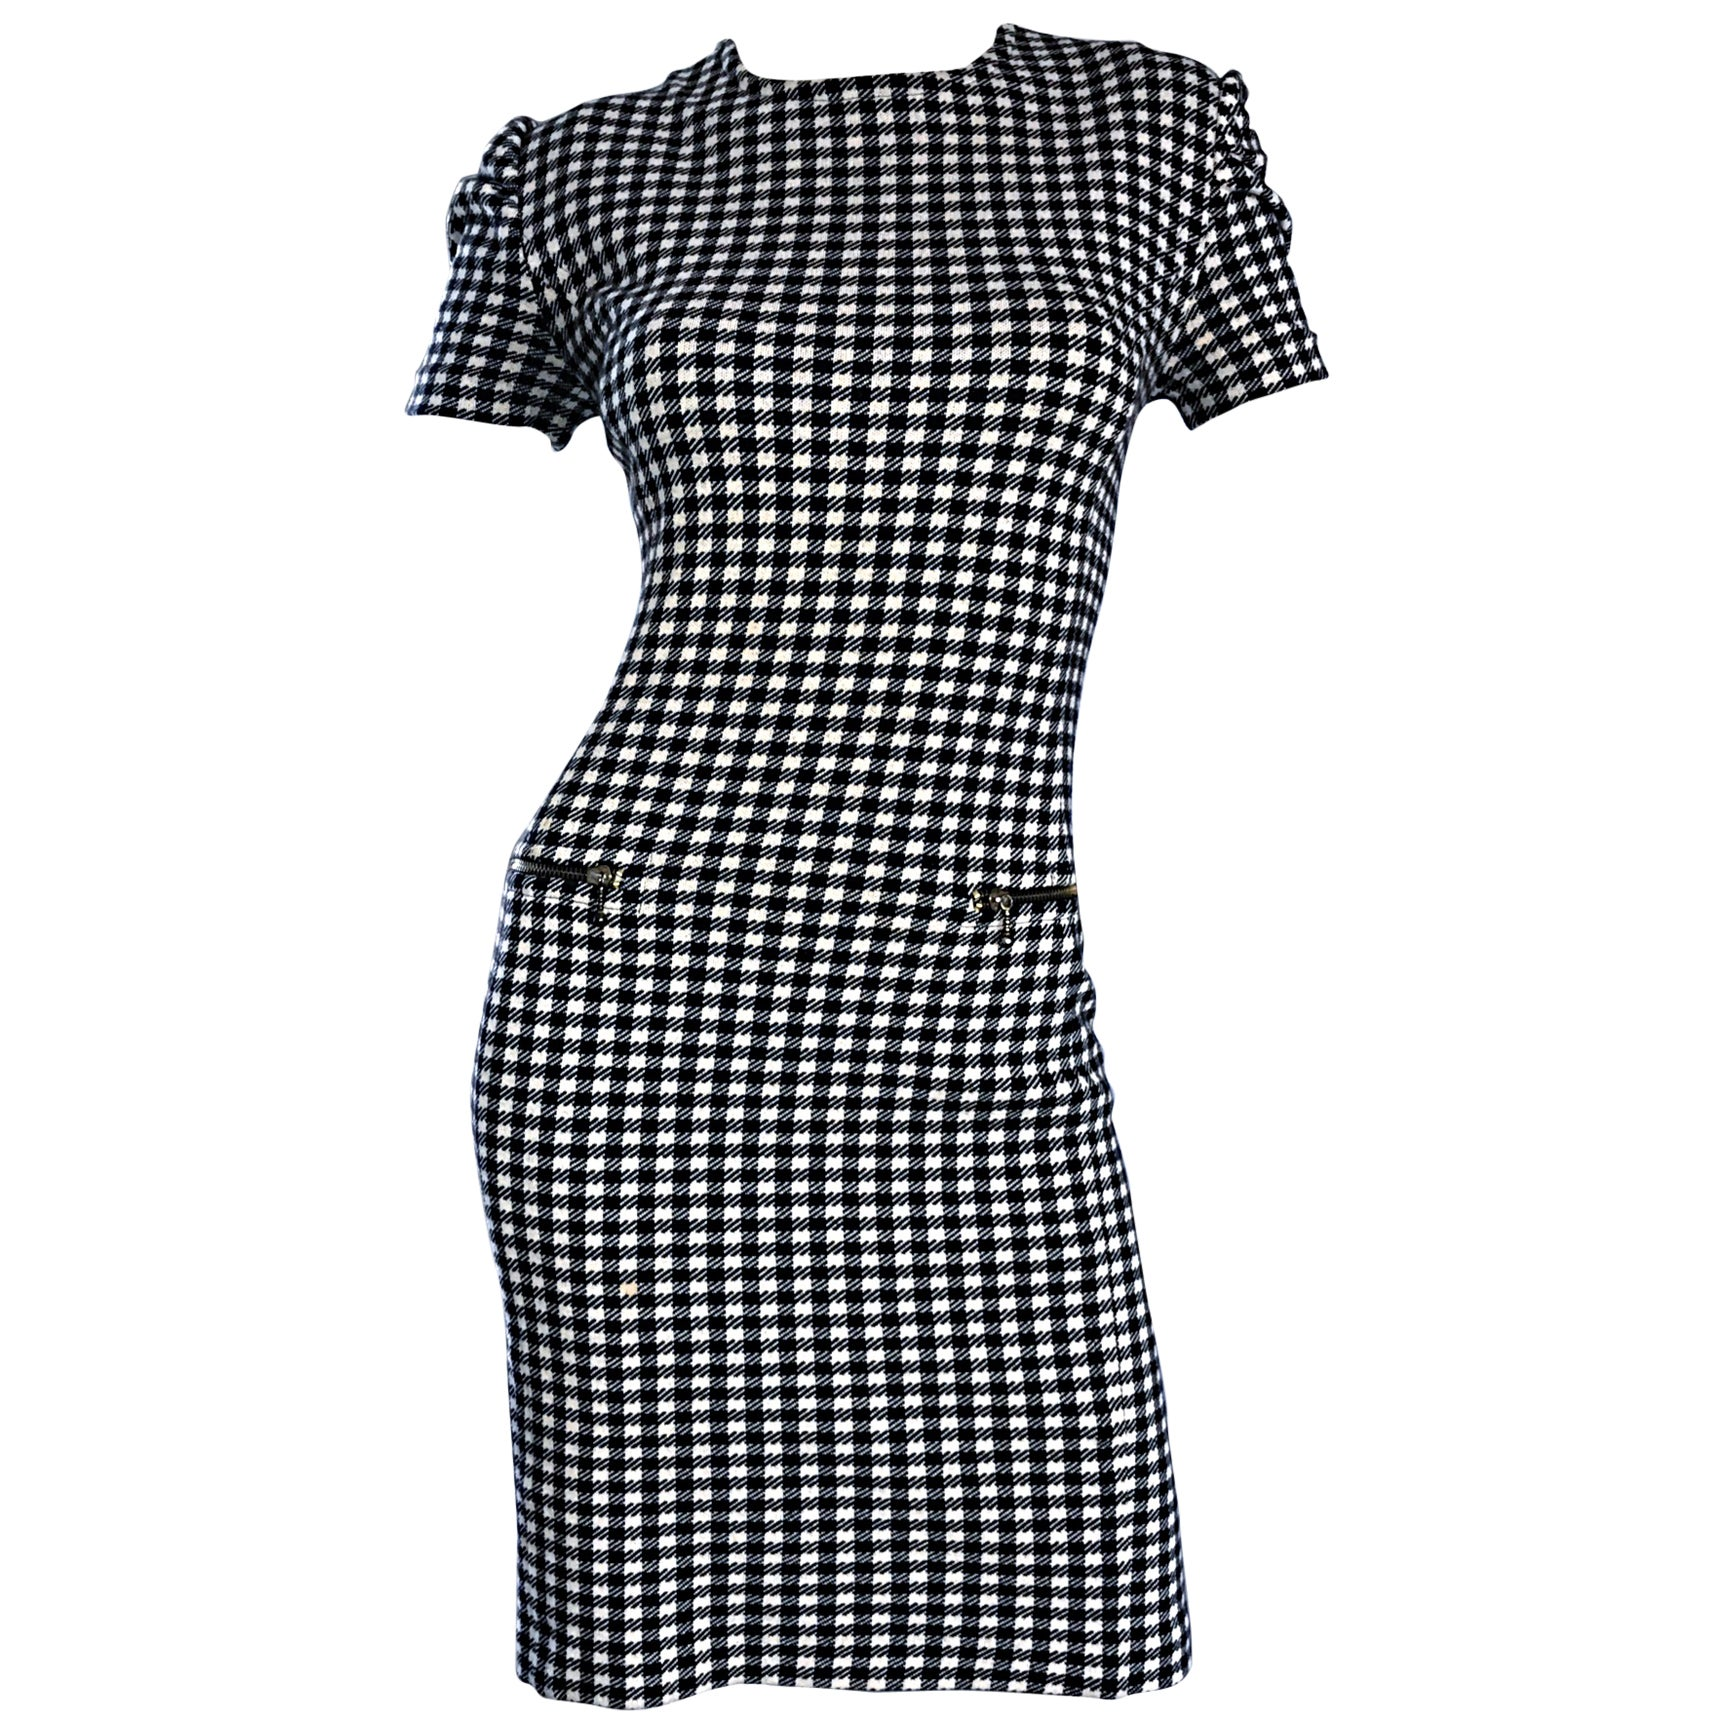 1990s Black and White Gingham Bodycon 90s Checkered Sexy Vintage Cotton Dress